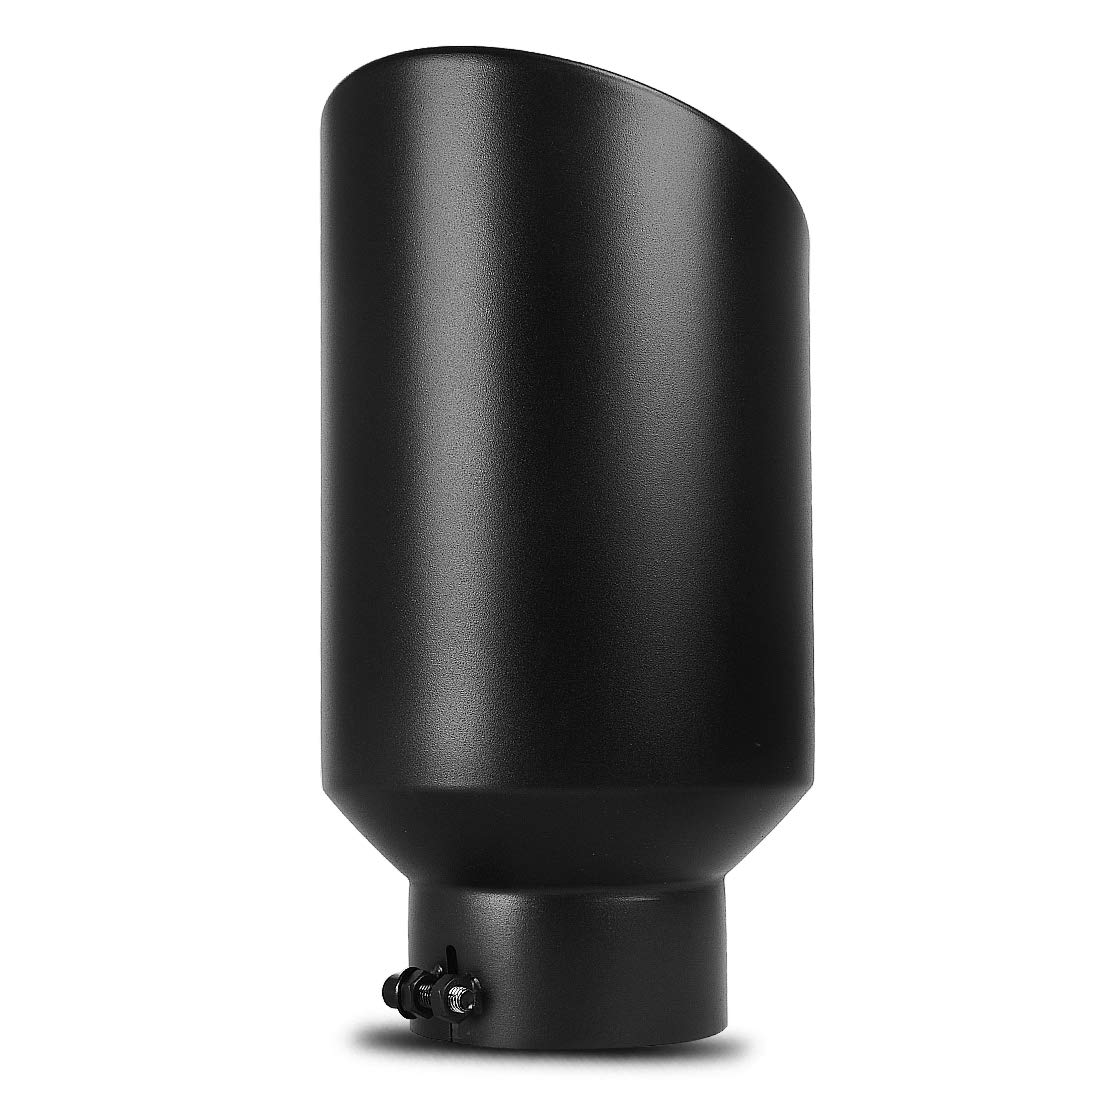 AUTOSAVER88 5x8x15 Black Powder Coated Stainless Steel Exhaust Tip Clamp On Design. 5 Inch Inlet Black Exhaust Tip